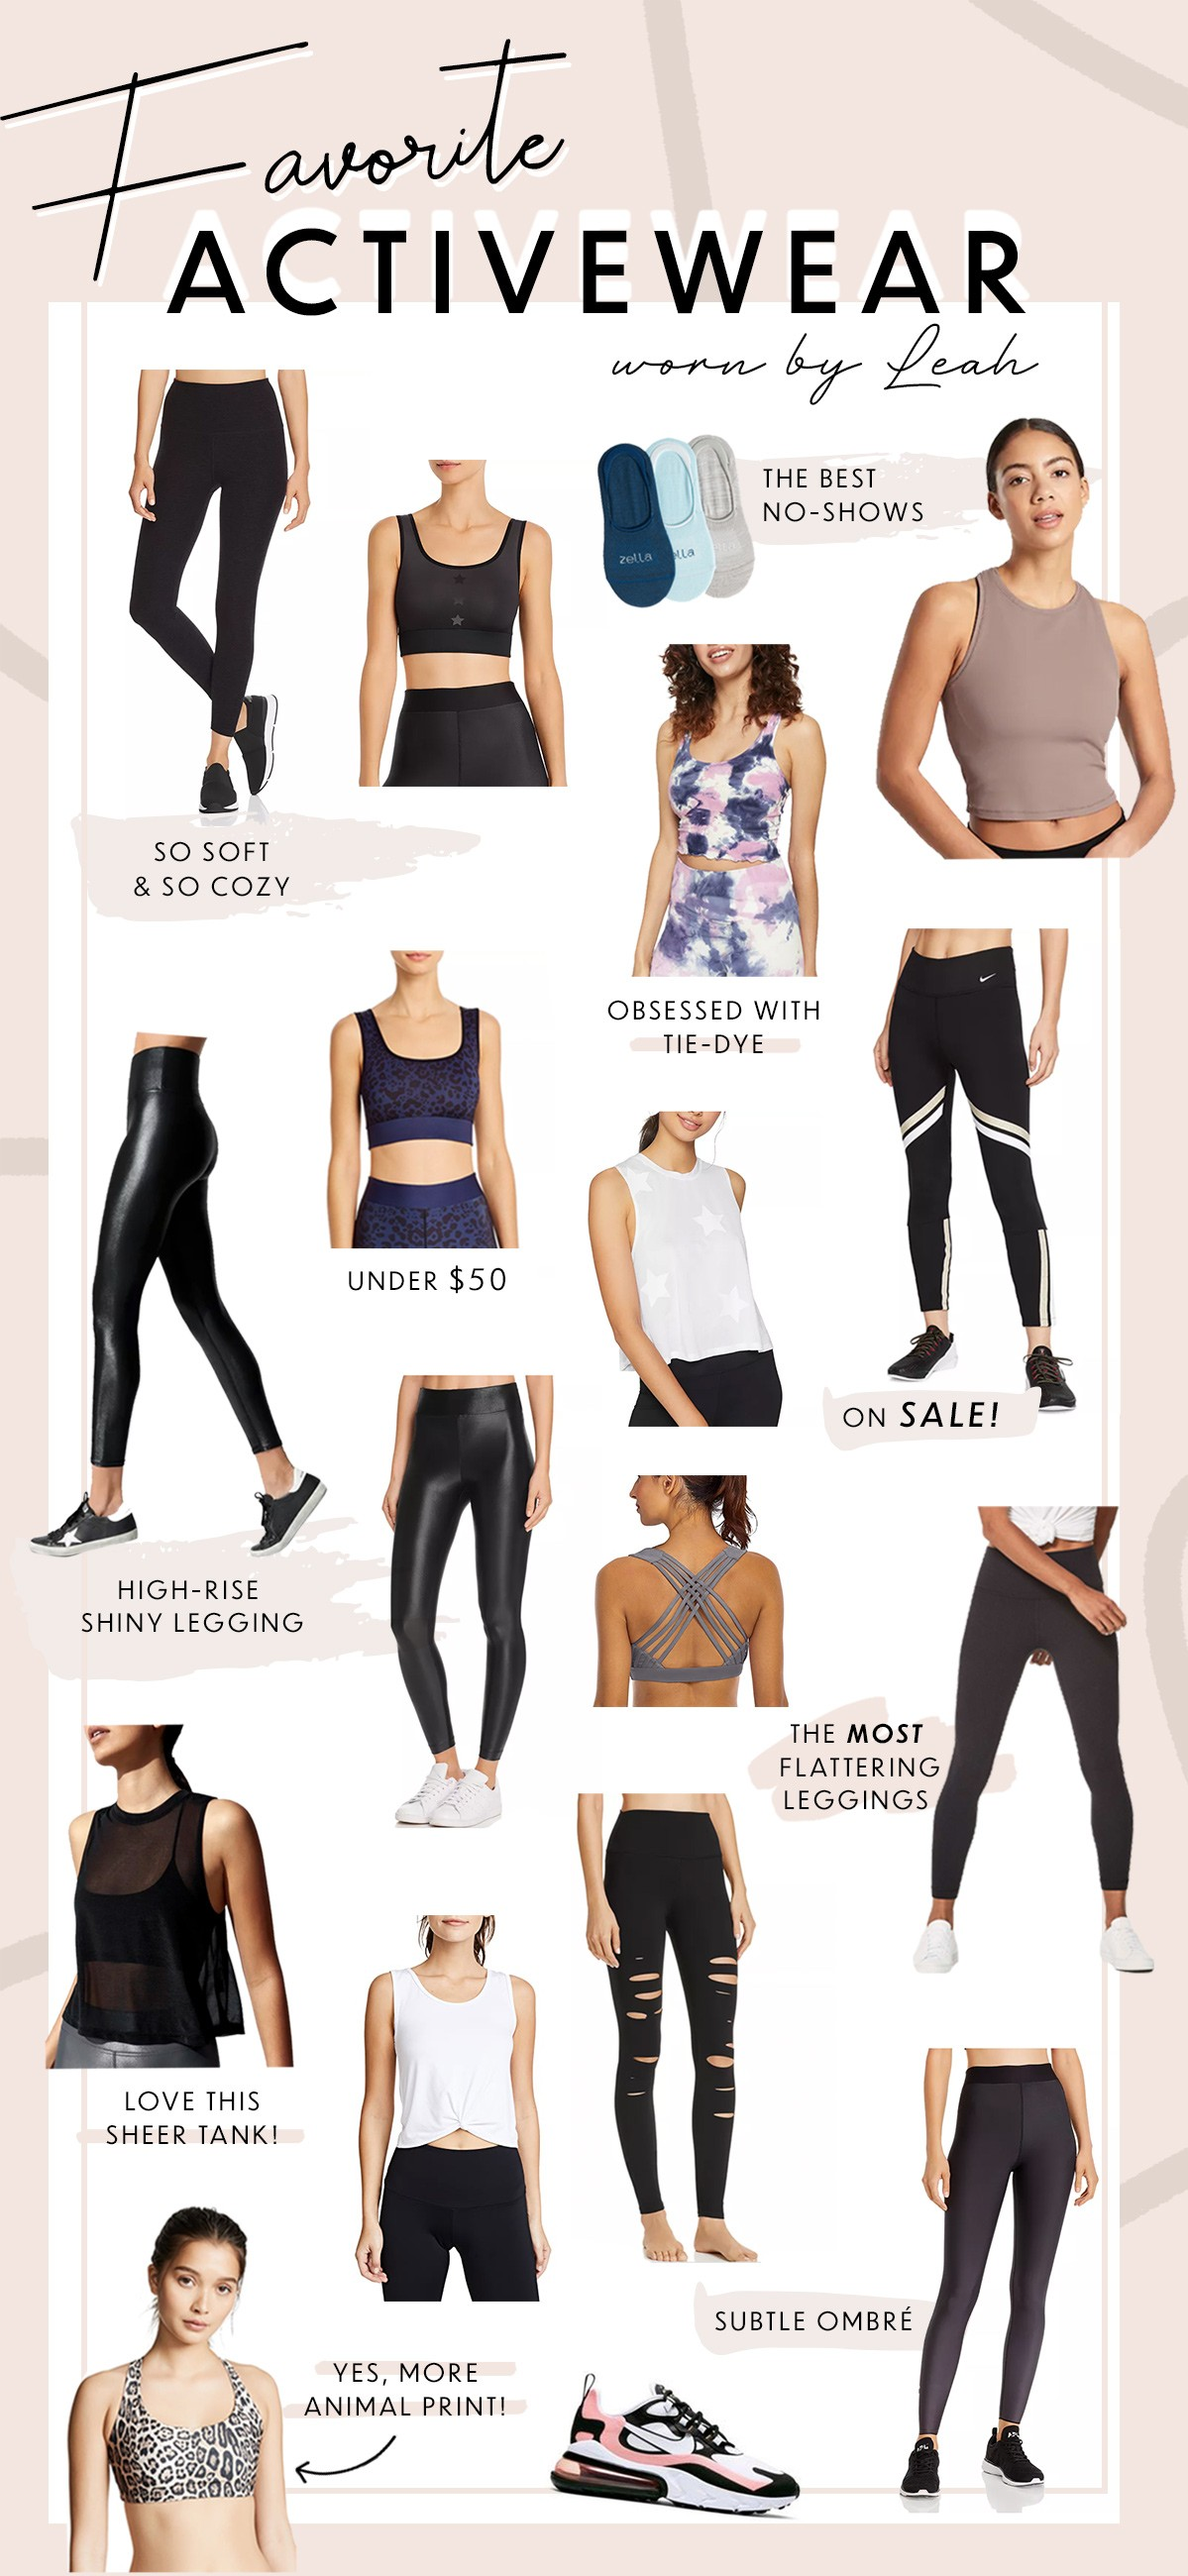 img?v=2 - Favorite Activewear